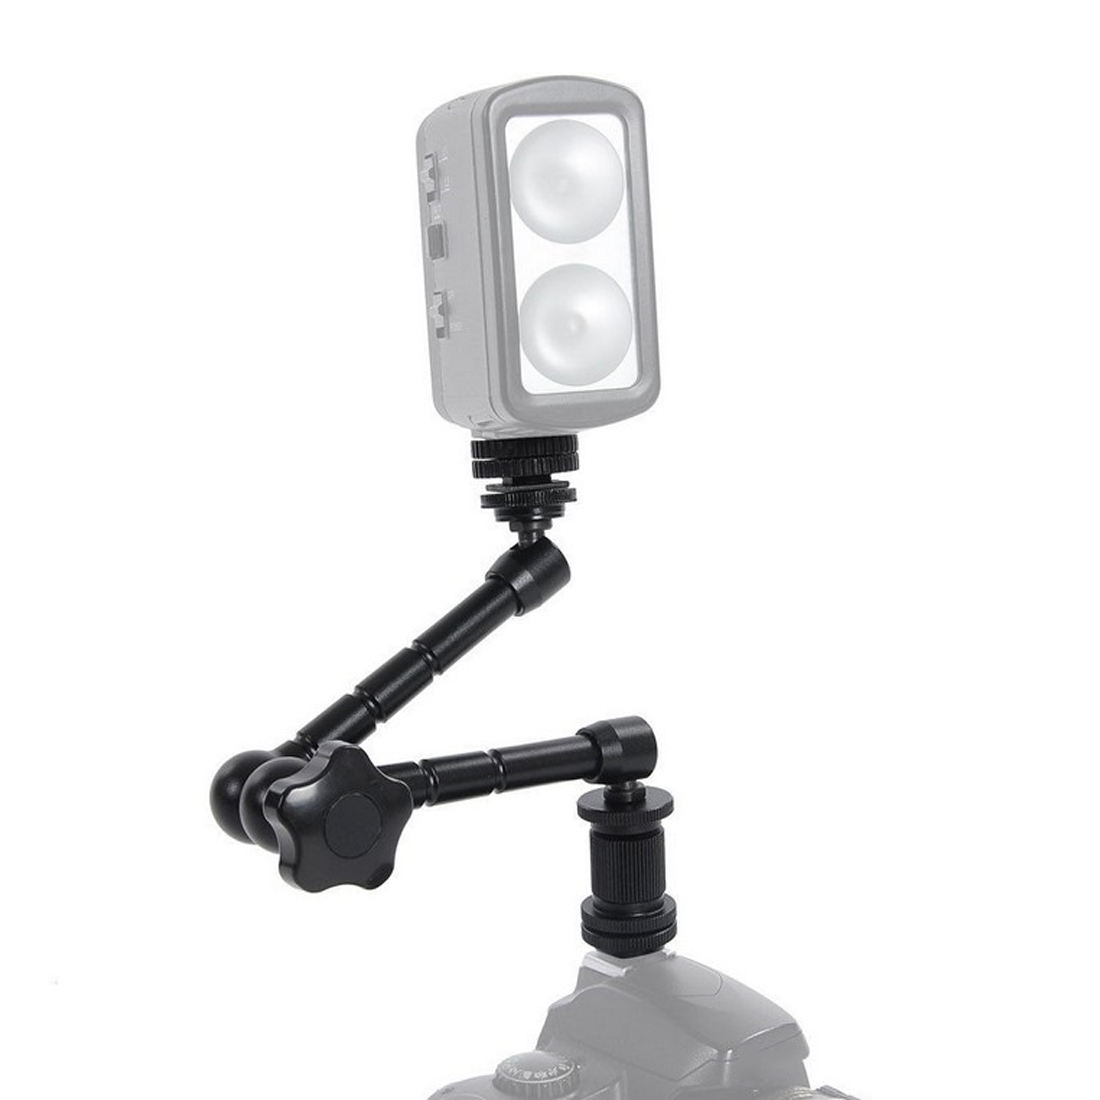 centechia 11inch Adjustable Friction Articulating Magic Arm + Super Clamp For DSLR LCD Monitor LED Light Camera Accessories